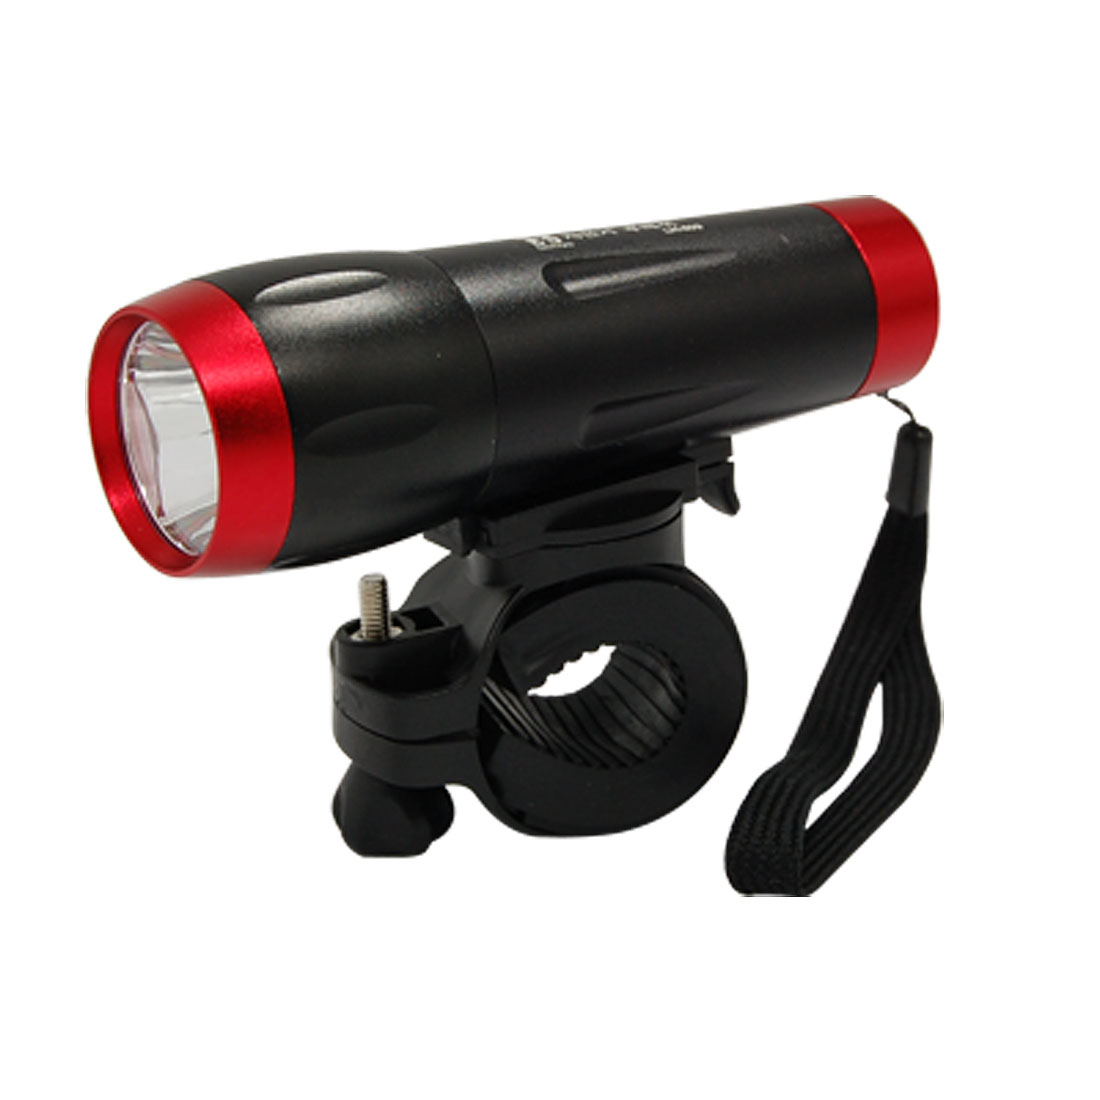 Alloy Bike Bicycle Front LED Flashlight Torch with Holder